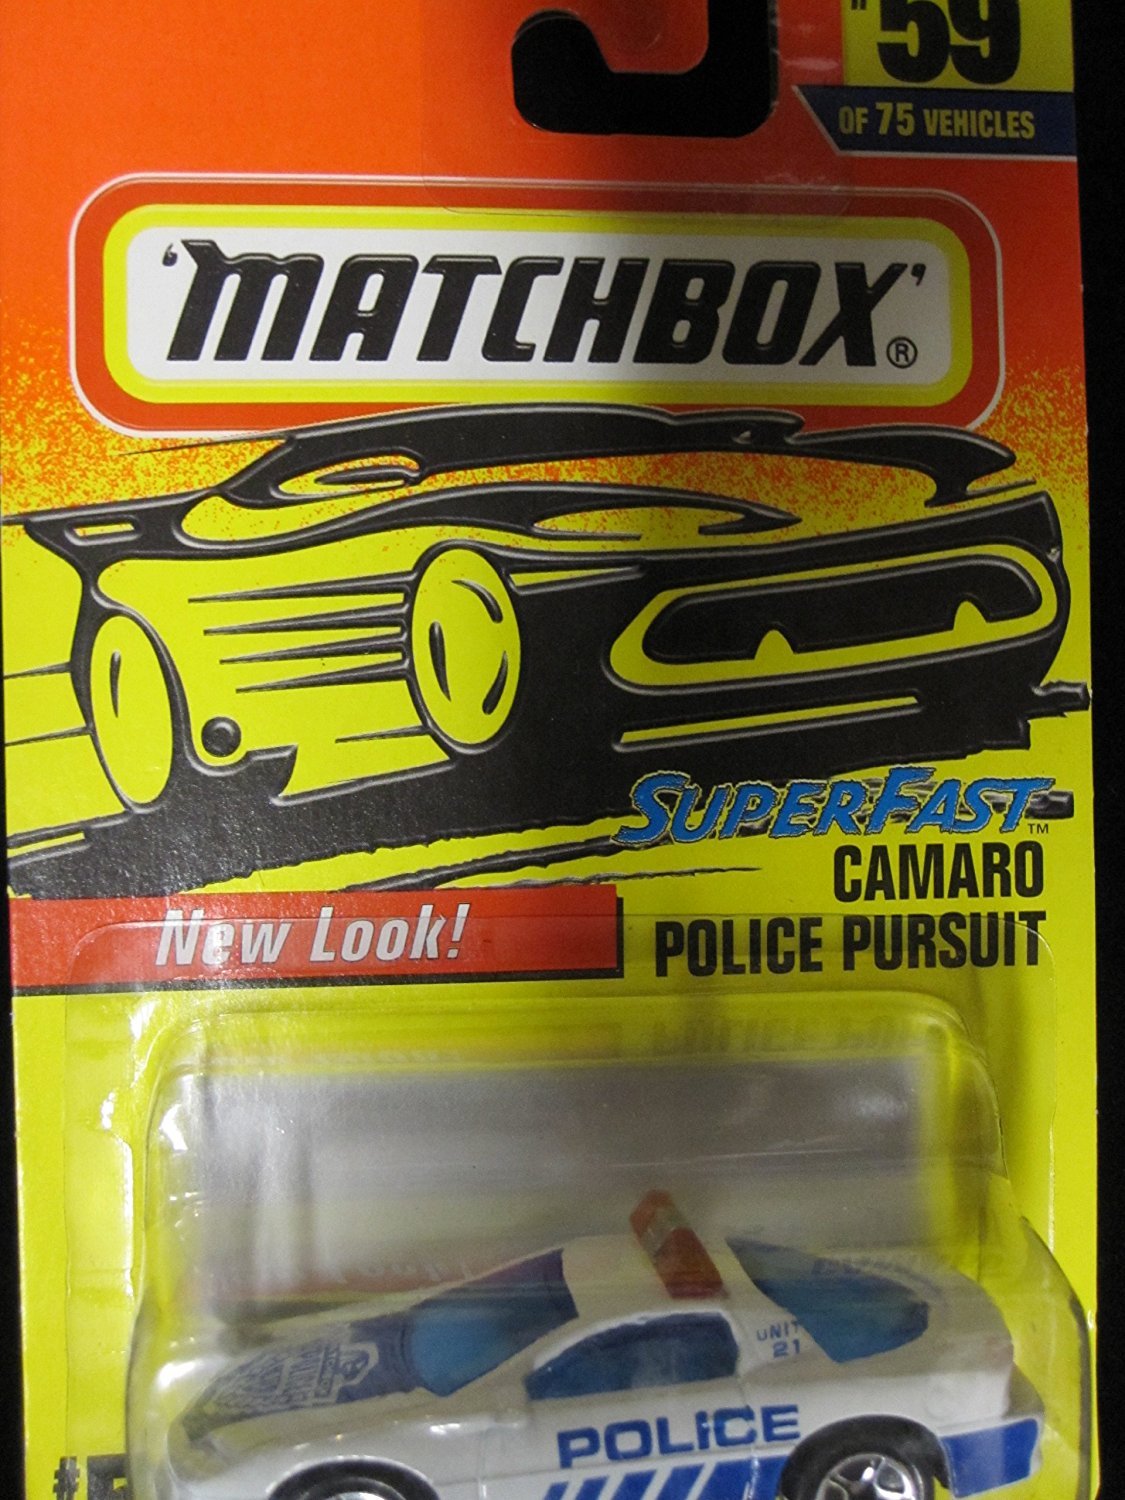 Camaro Police Pursuit (white/blue) Matchbox Superfast Collectible Car #59